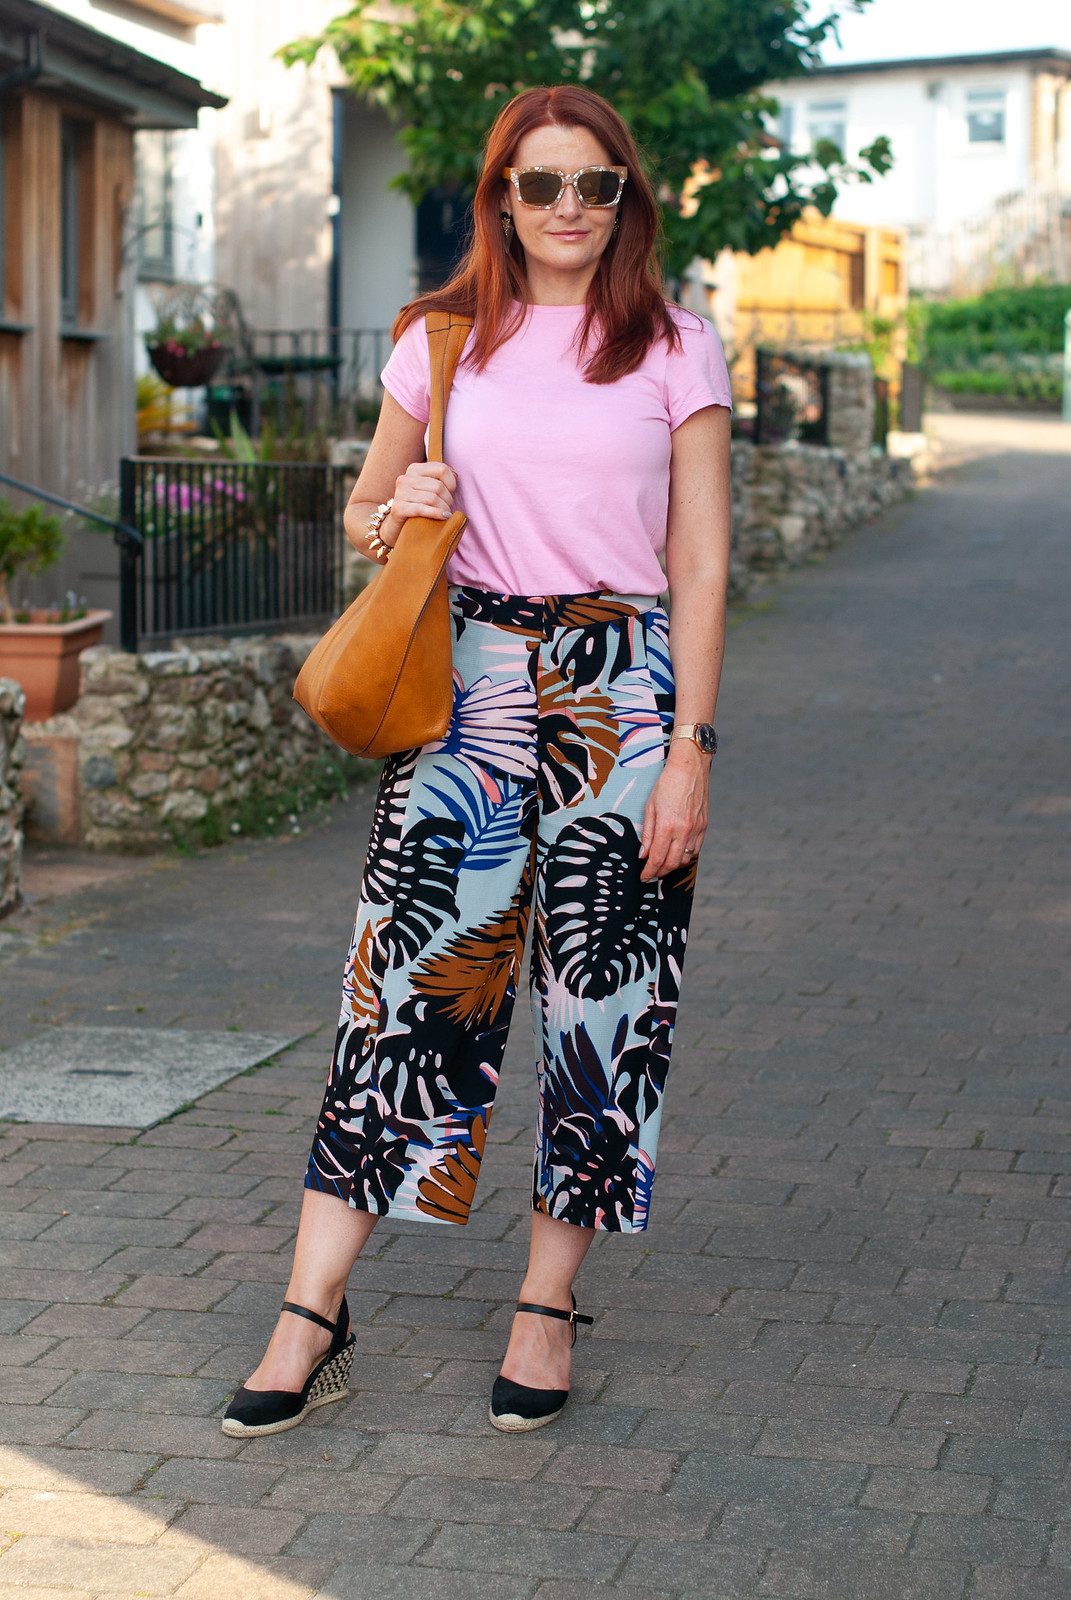 Wearing Pink With Red Hair in Summer \ candy pink t-shirt \ palm print culottes \ black wedge espadrilles \ tan hobo bag | Not Dressed As Lamb, over 40 style